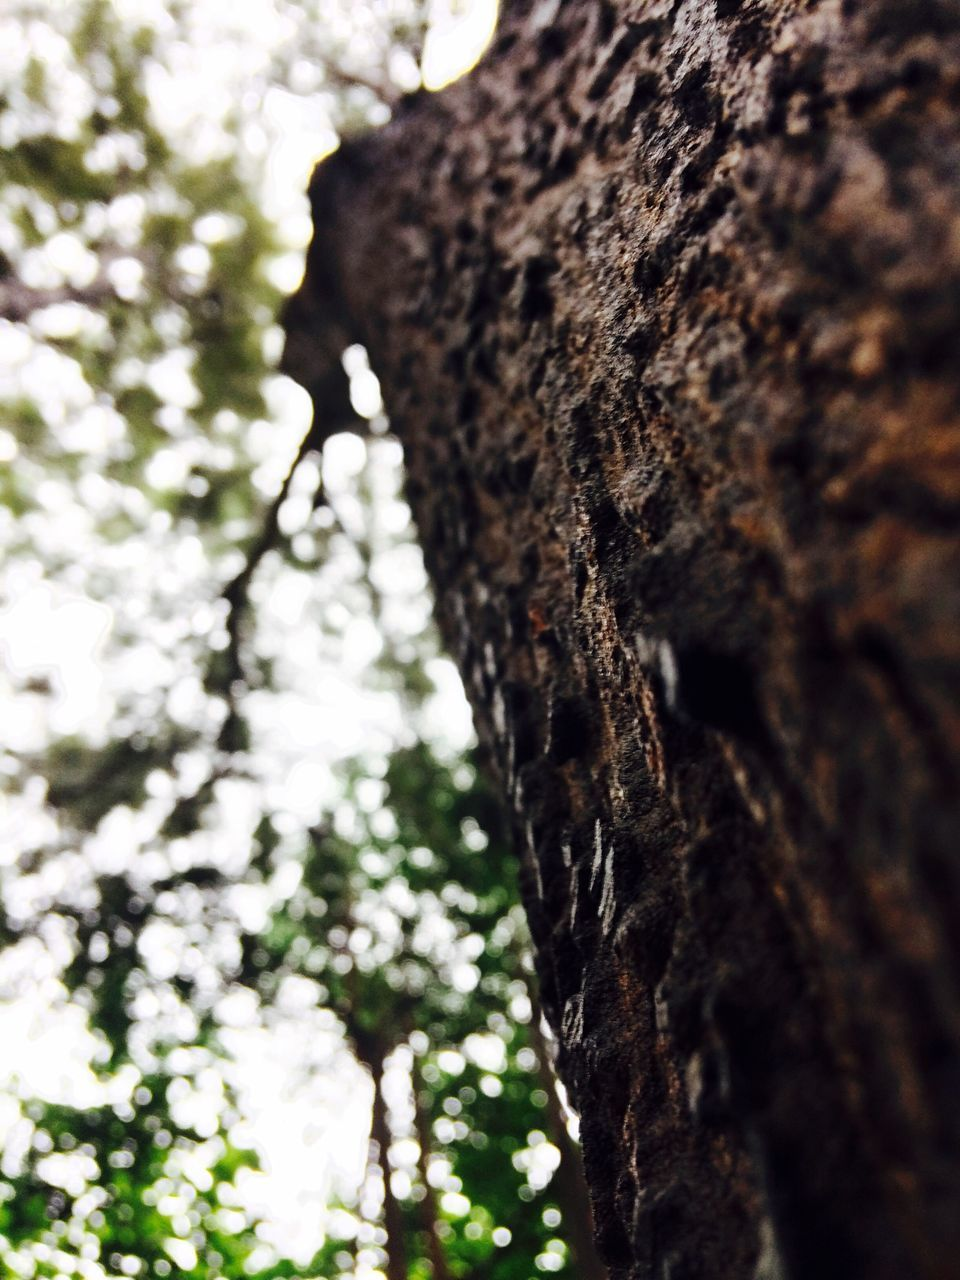 tree trunk, tree, bark, low angle view, textured, nature, day, rough, no people, focus on foreground, trunk, growth, close-up, outdoors, branch, beauty in nature, woodpecker, sky, dead tree